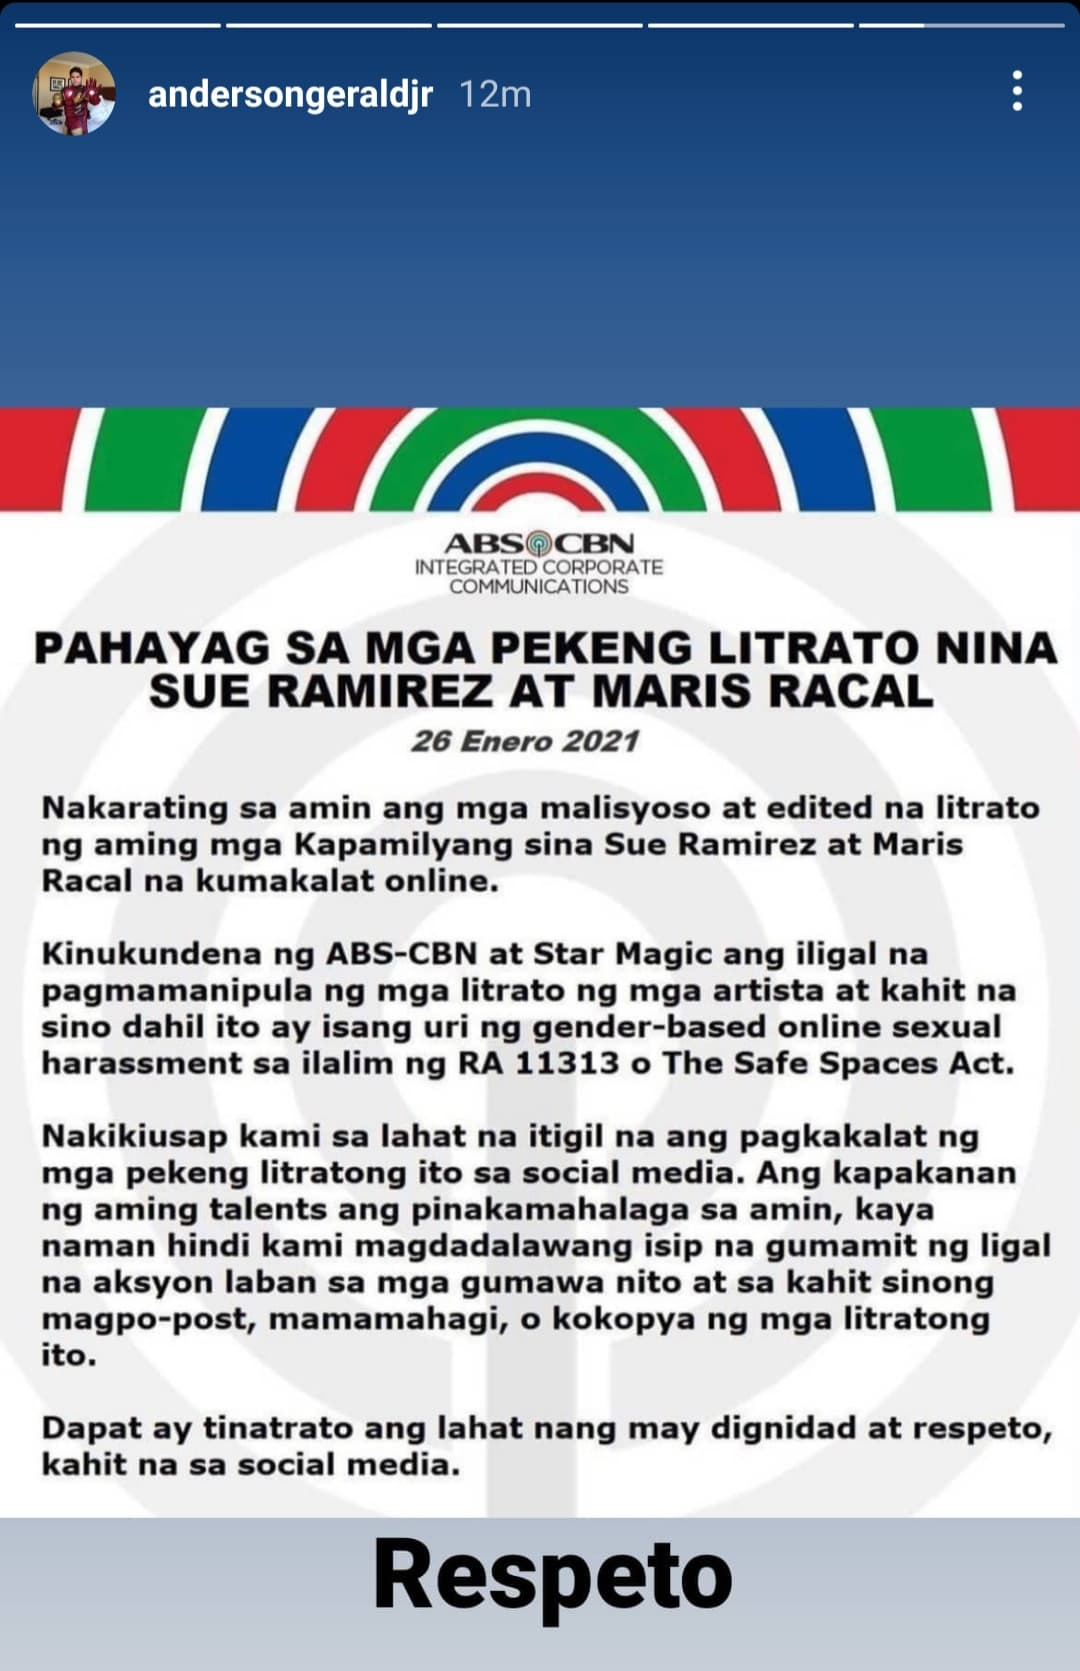 gerald anderson reposted abs-cbn official statement on sue and maris fake nude photos with the caption respeto